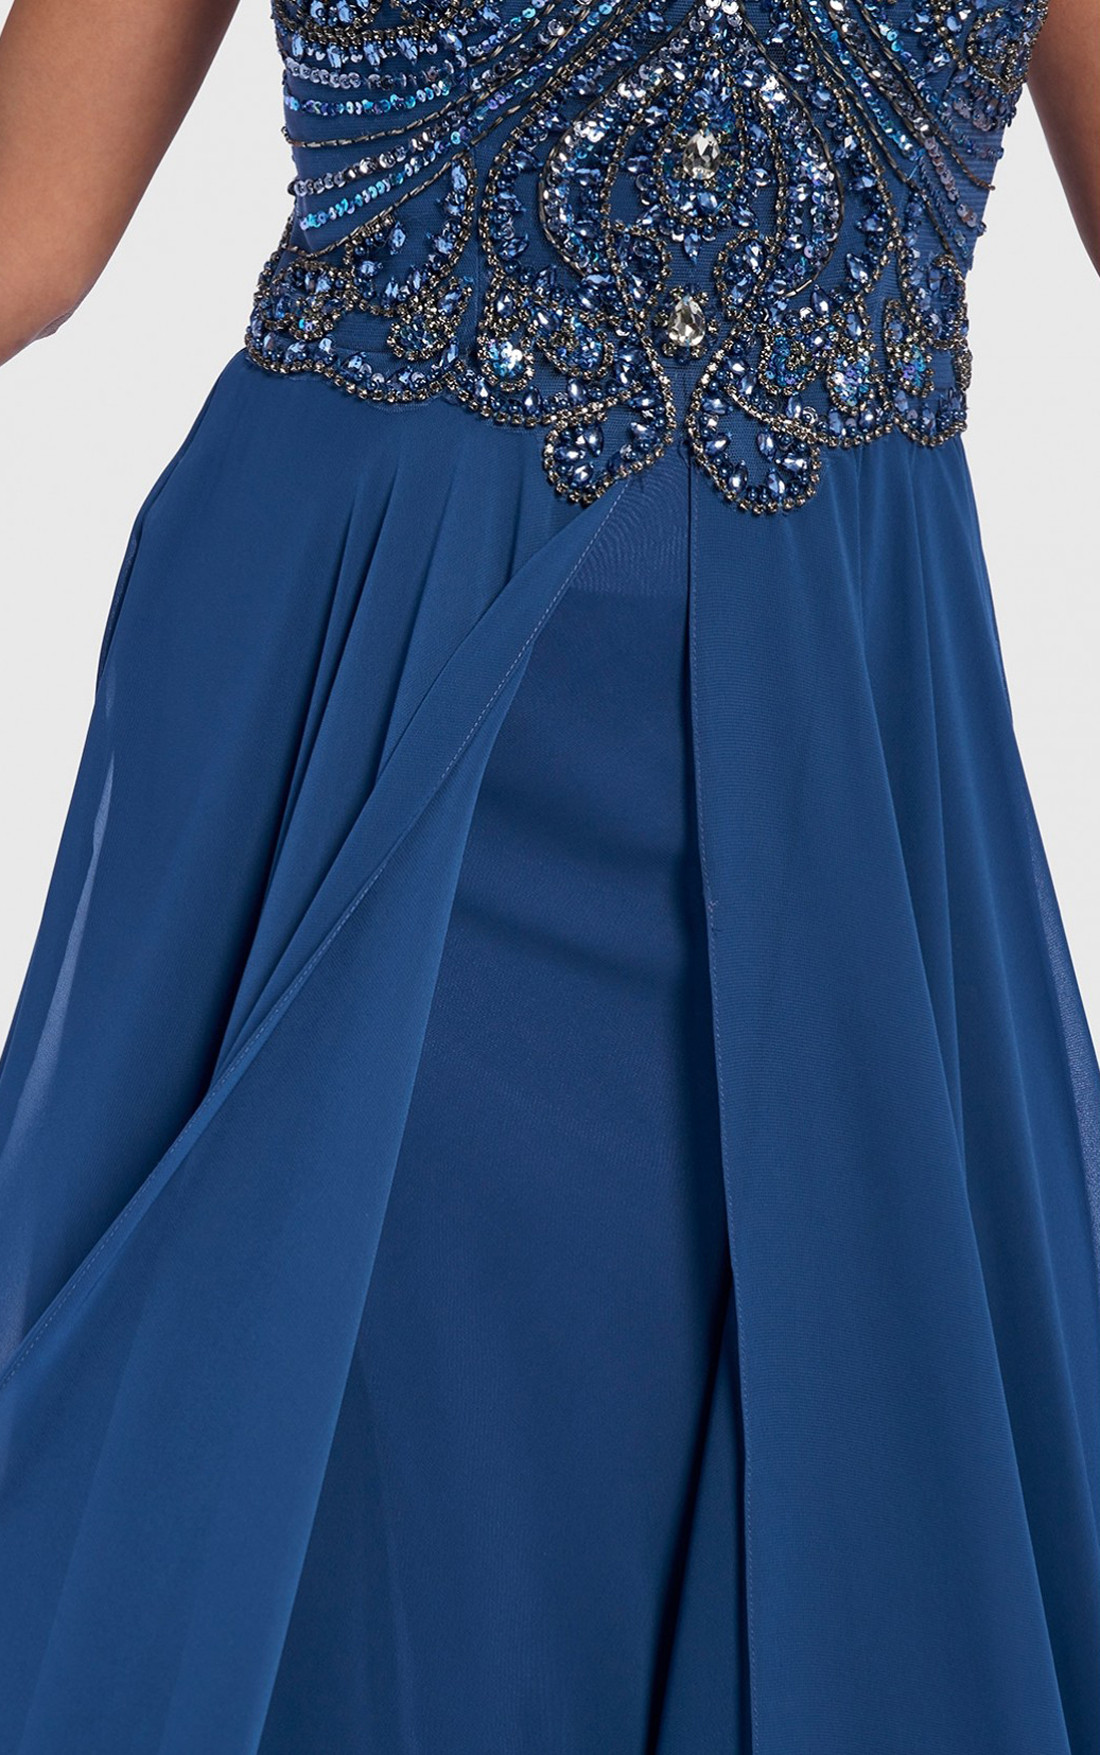 Forever Unique - Jakku Blue Embellished Halter-Neck Maxi Dress (AF0701)